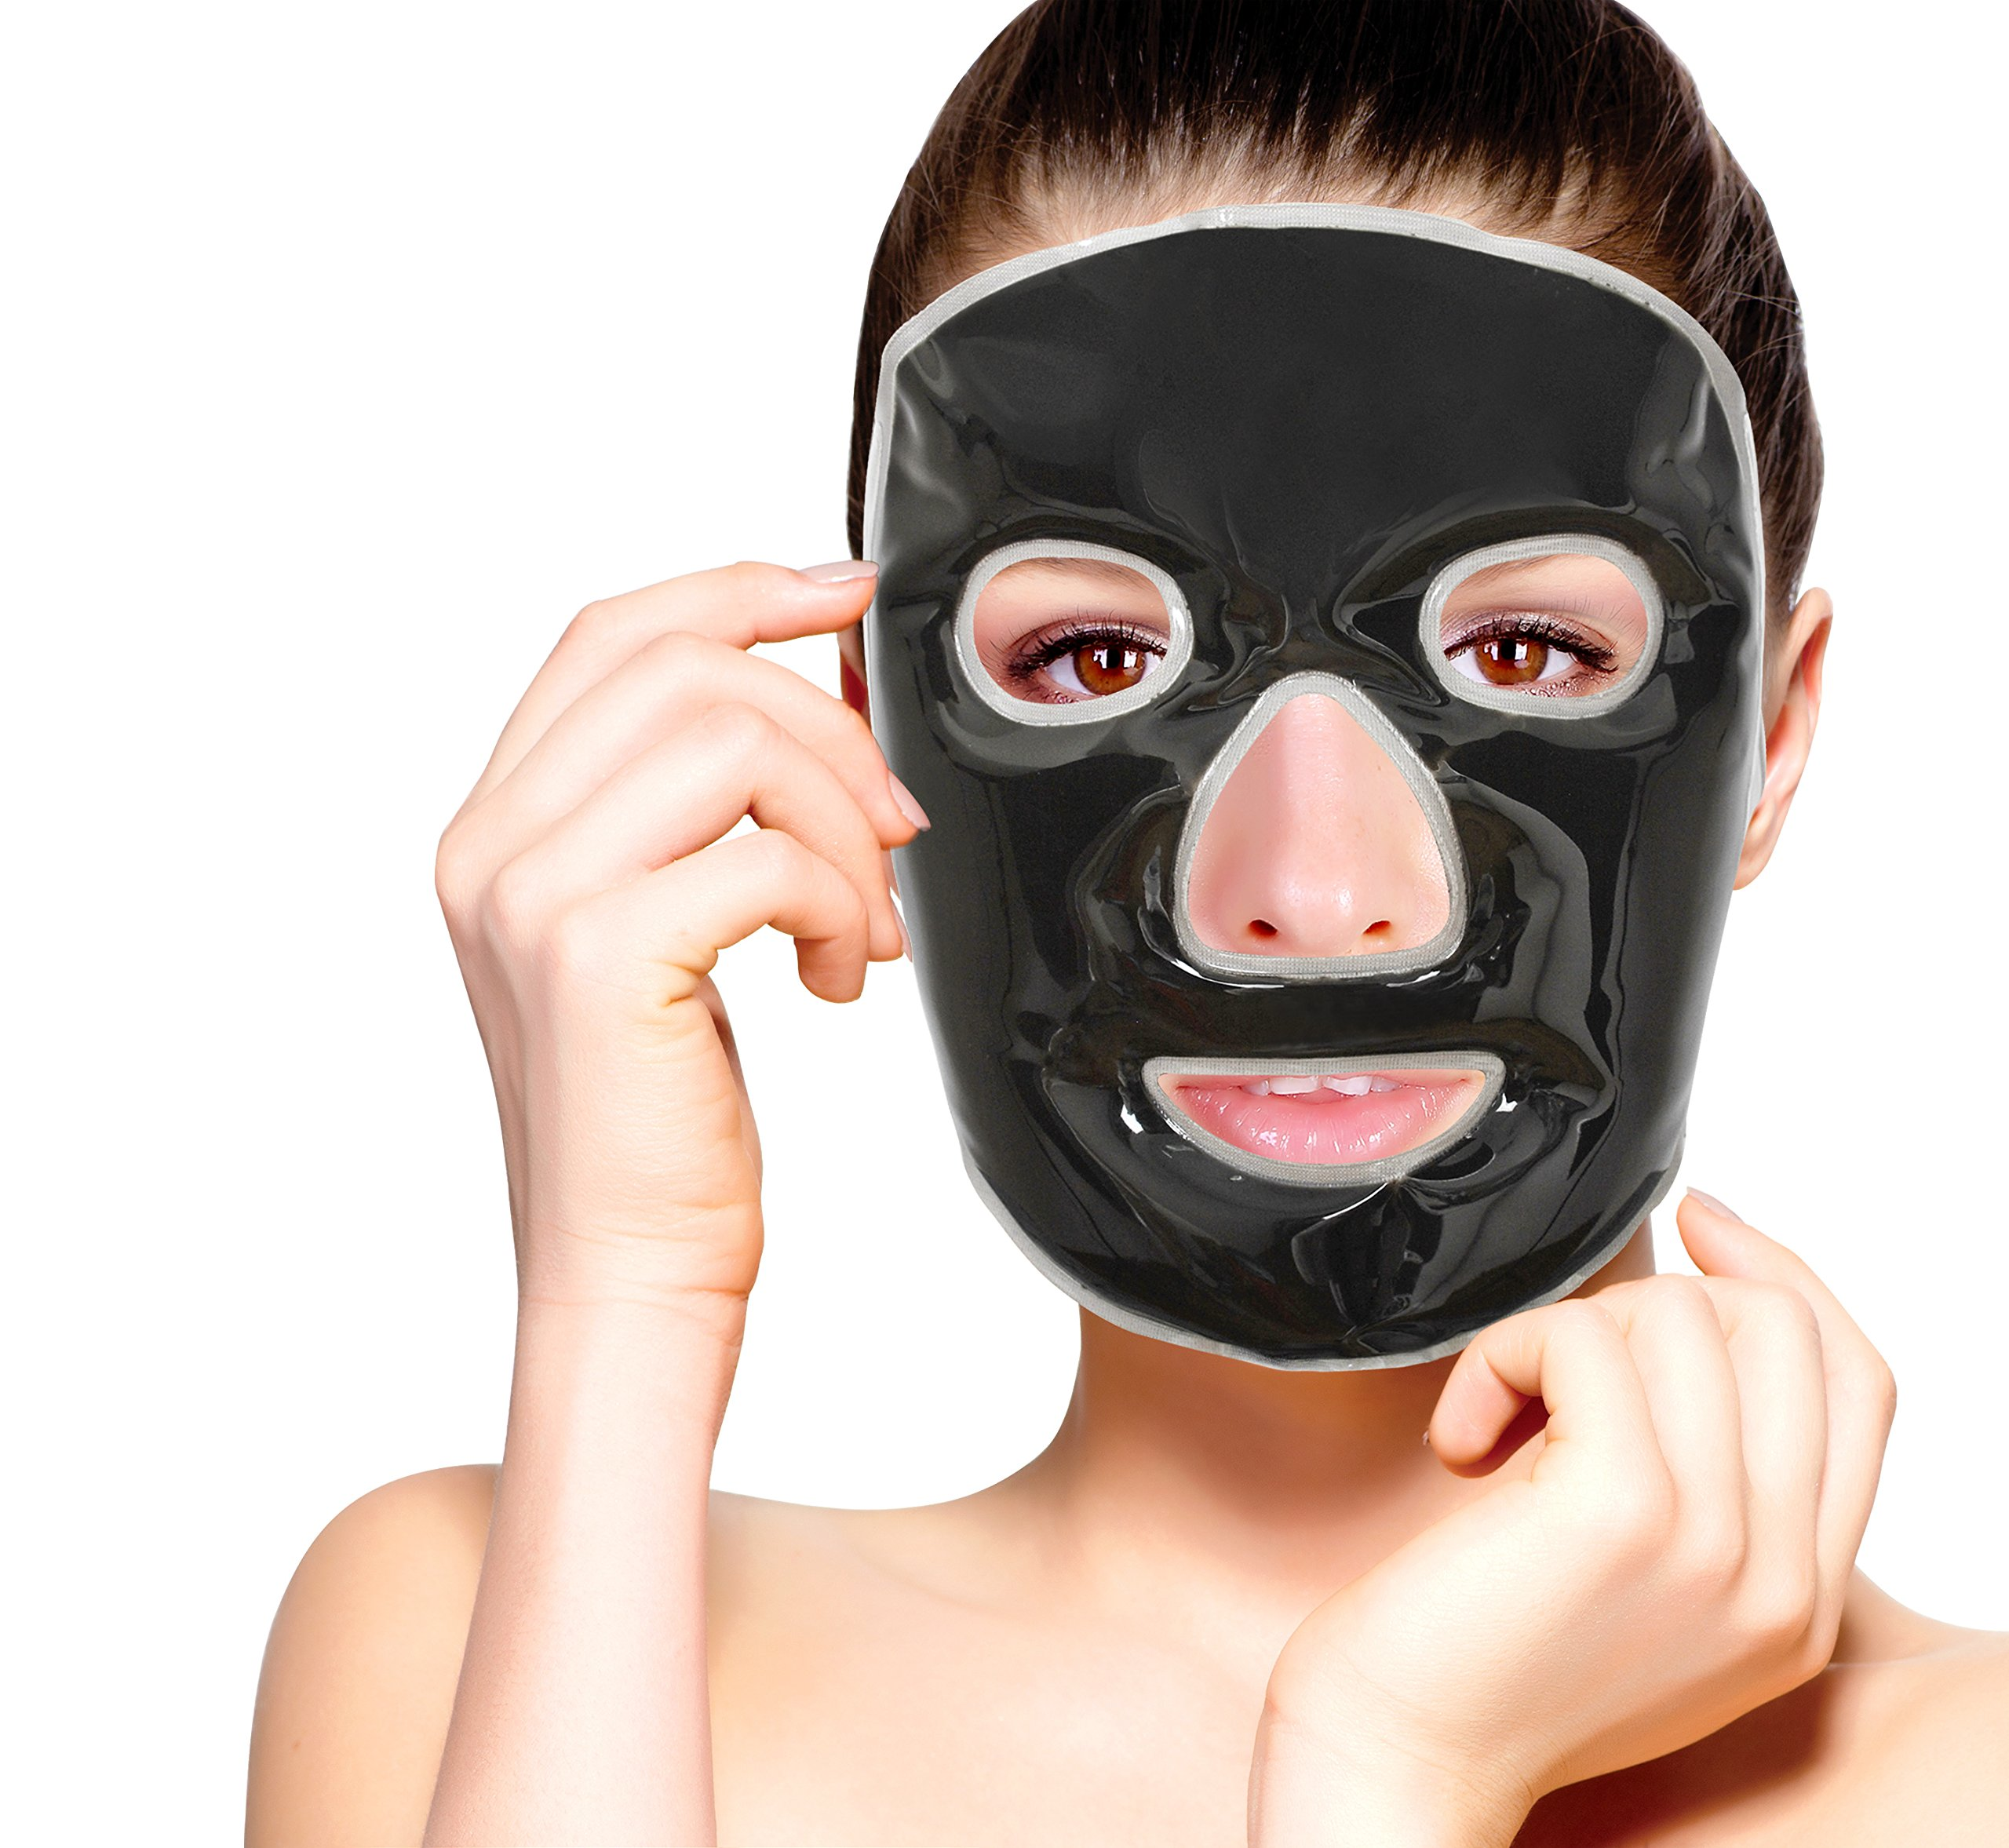 Cold Clay Facial Ice Mask by FOMI Care | Cooling Face Mask for Acne, Swollen Face, Puffy Eyes, Dark Circles, Headache, Migraine, Sinus Relief | Fabric Backing | Natural Clay Filling (X-Large)